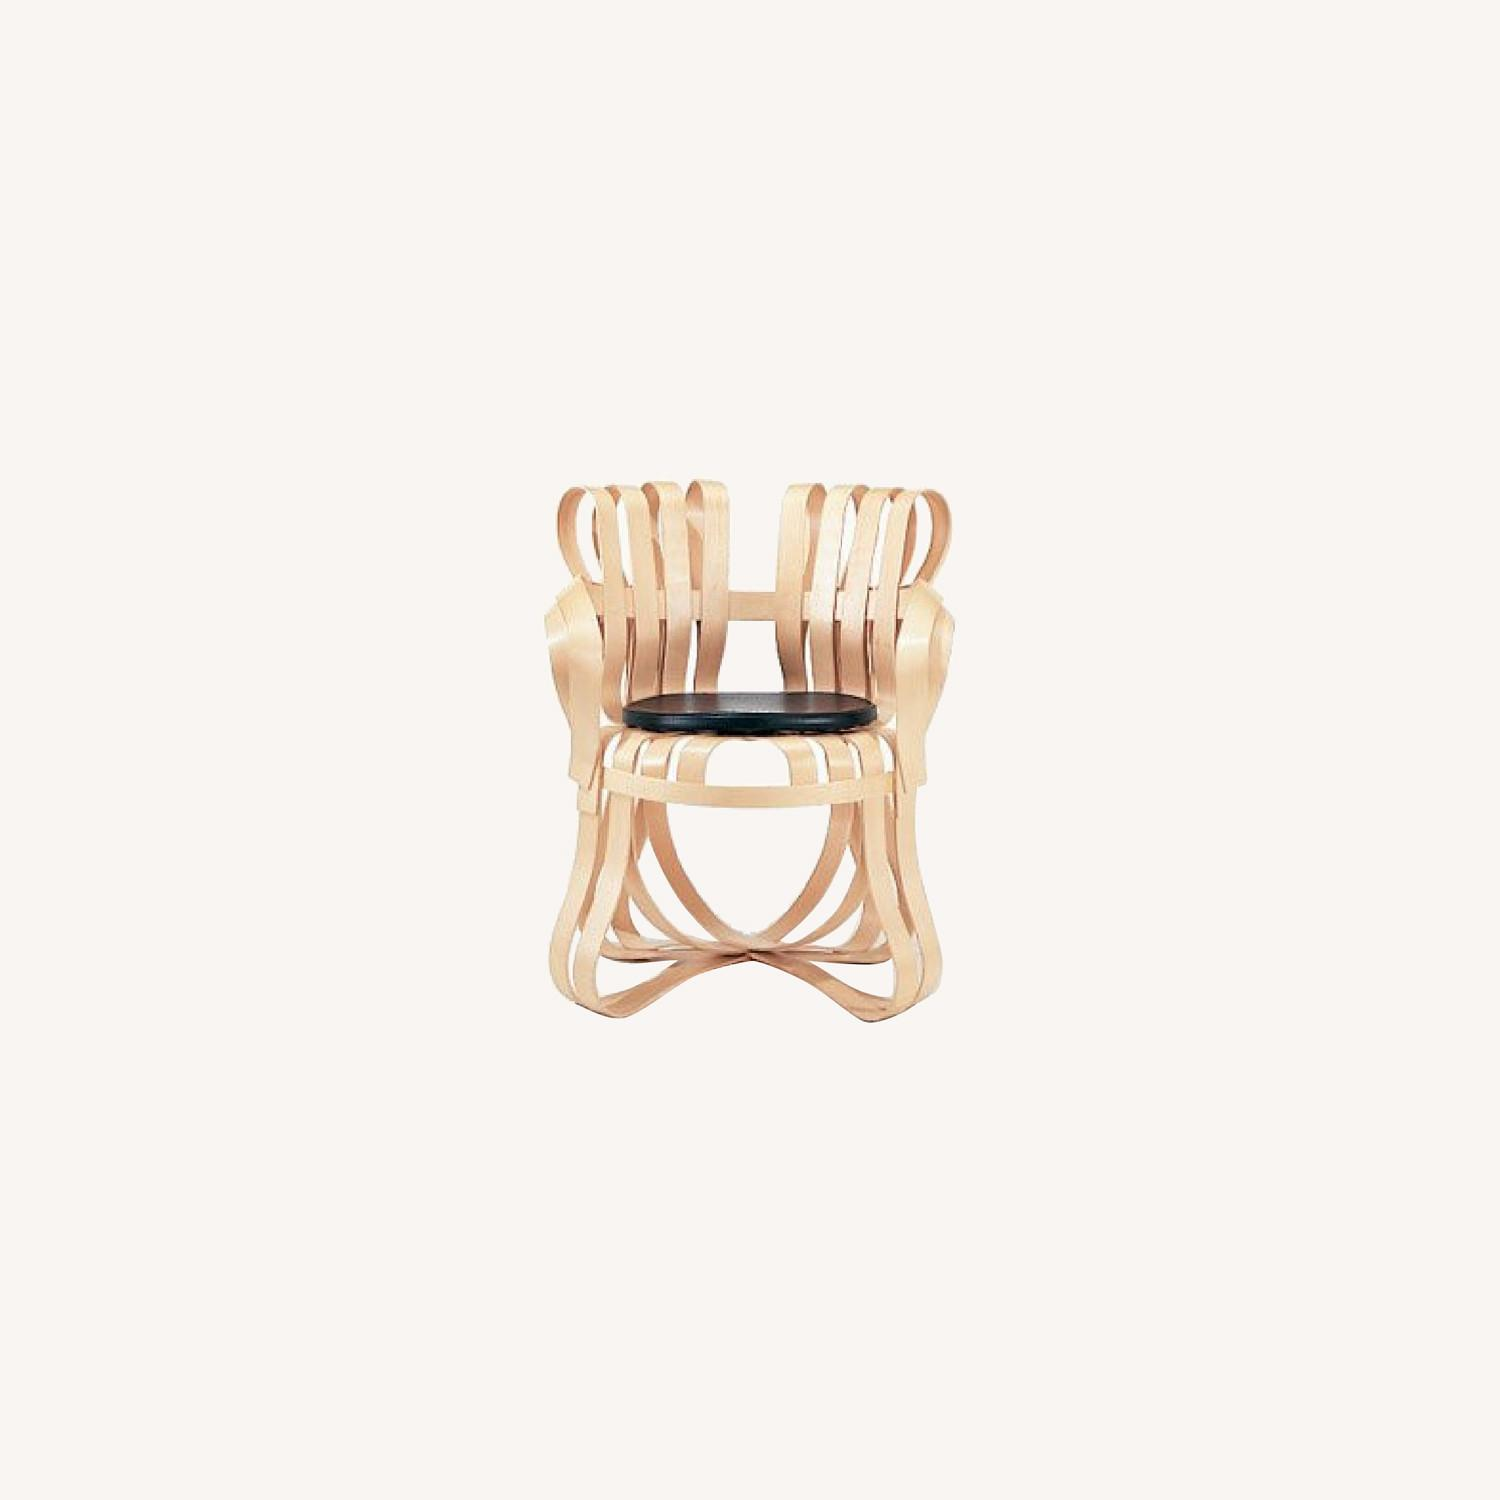 Knoll Gehry Cross Check Chairs - image-0